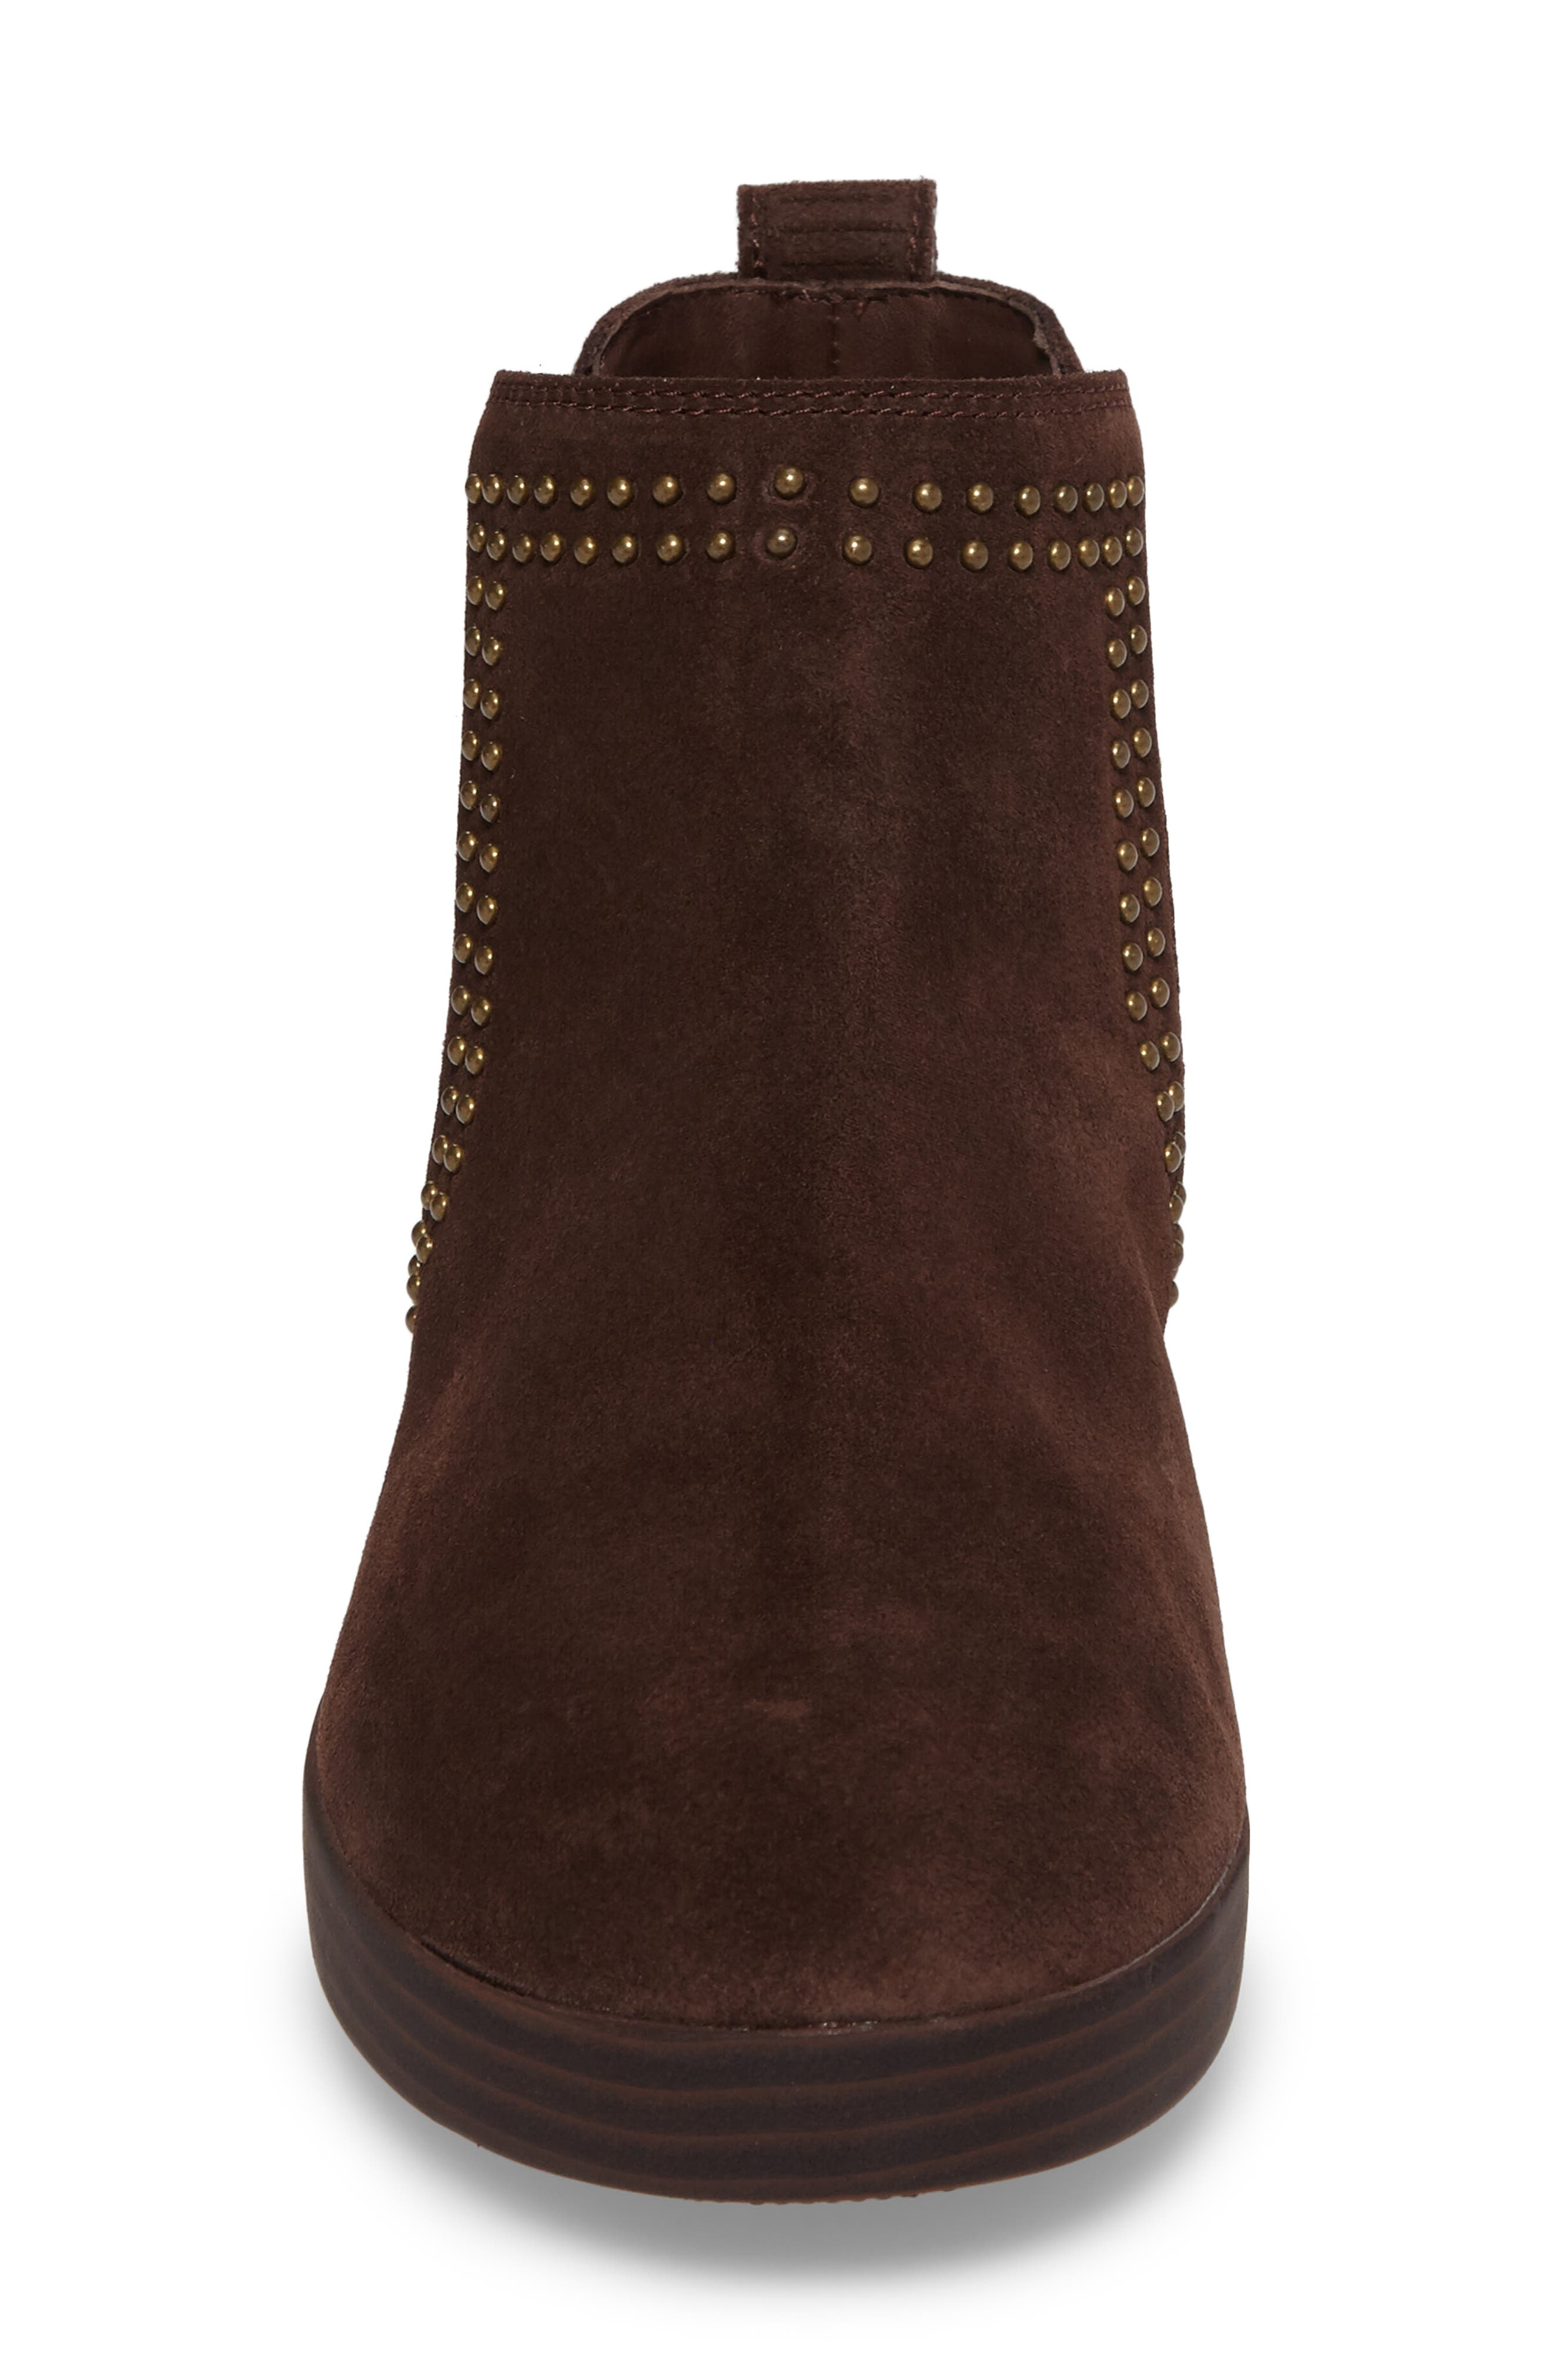 Superchelsea Studded Boot,                             Alternate thumbnail 4, color,                             Chocolate